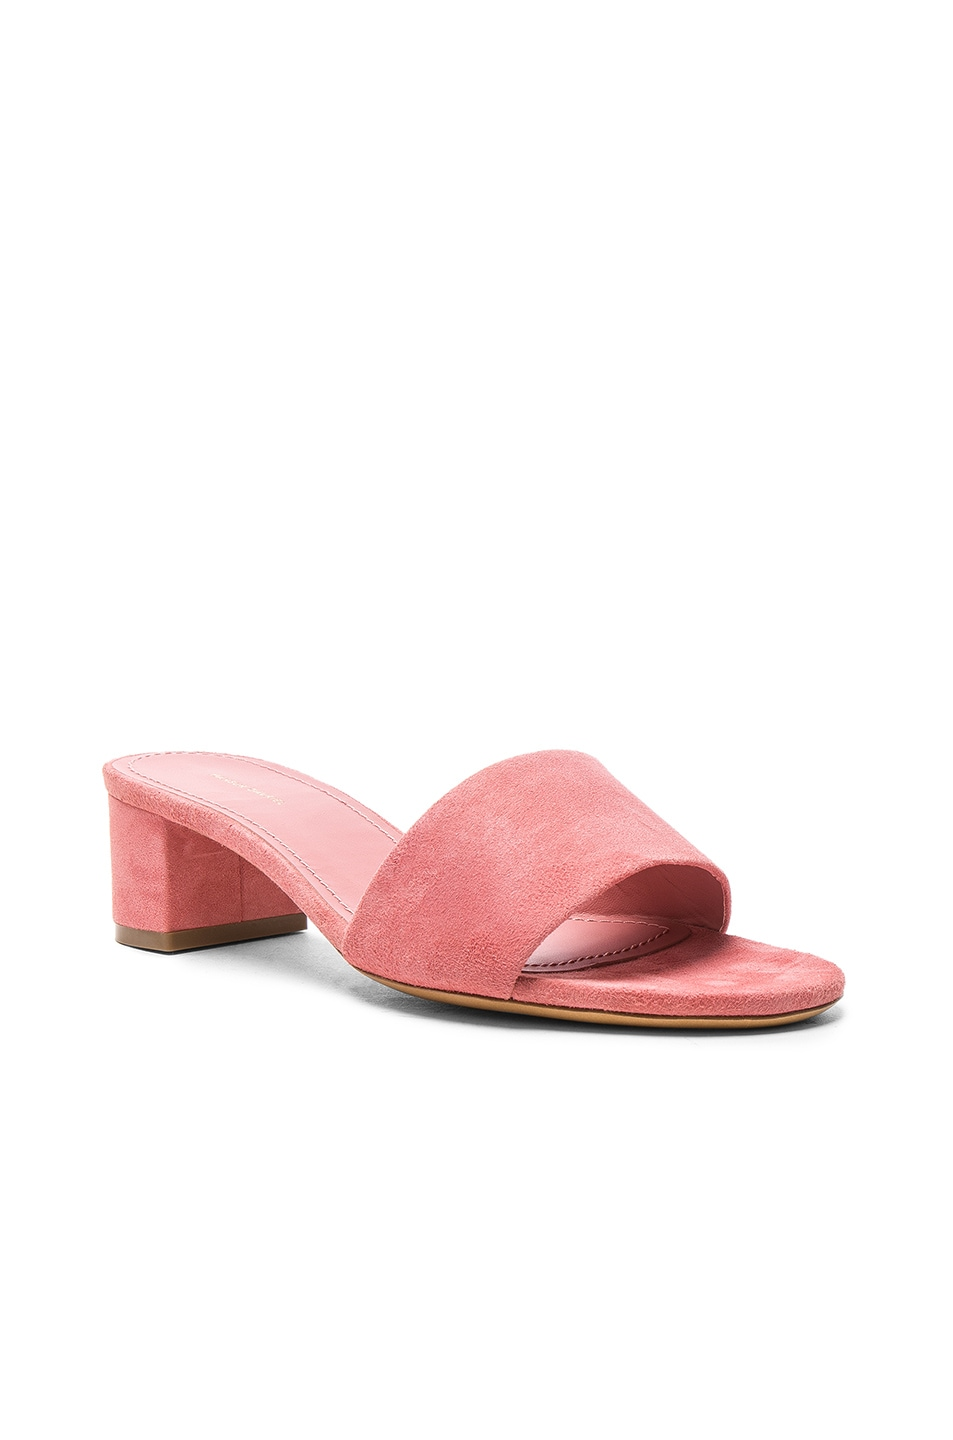 Image 2 of Mansur Gavriel Suede Single Strap Heels in Blush Suede